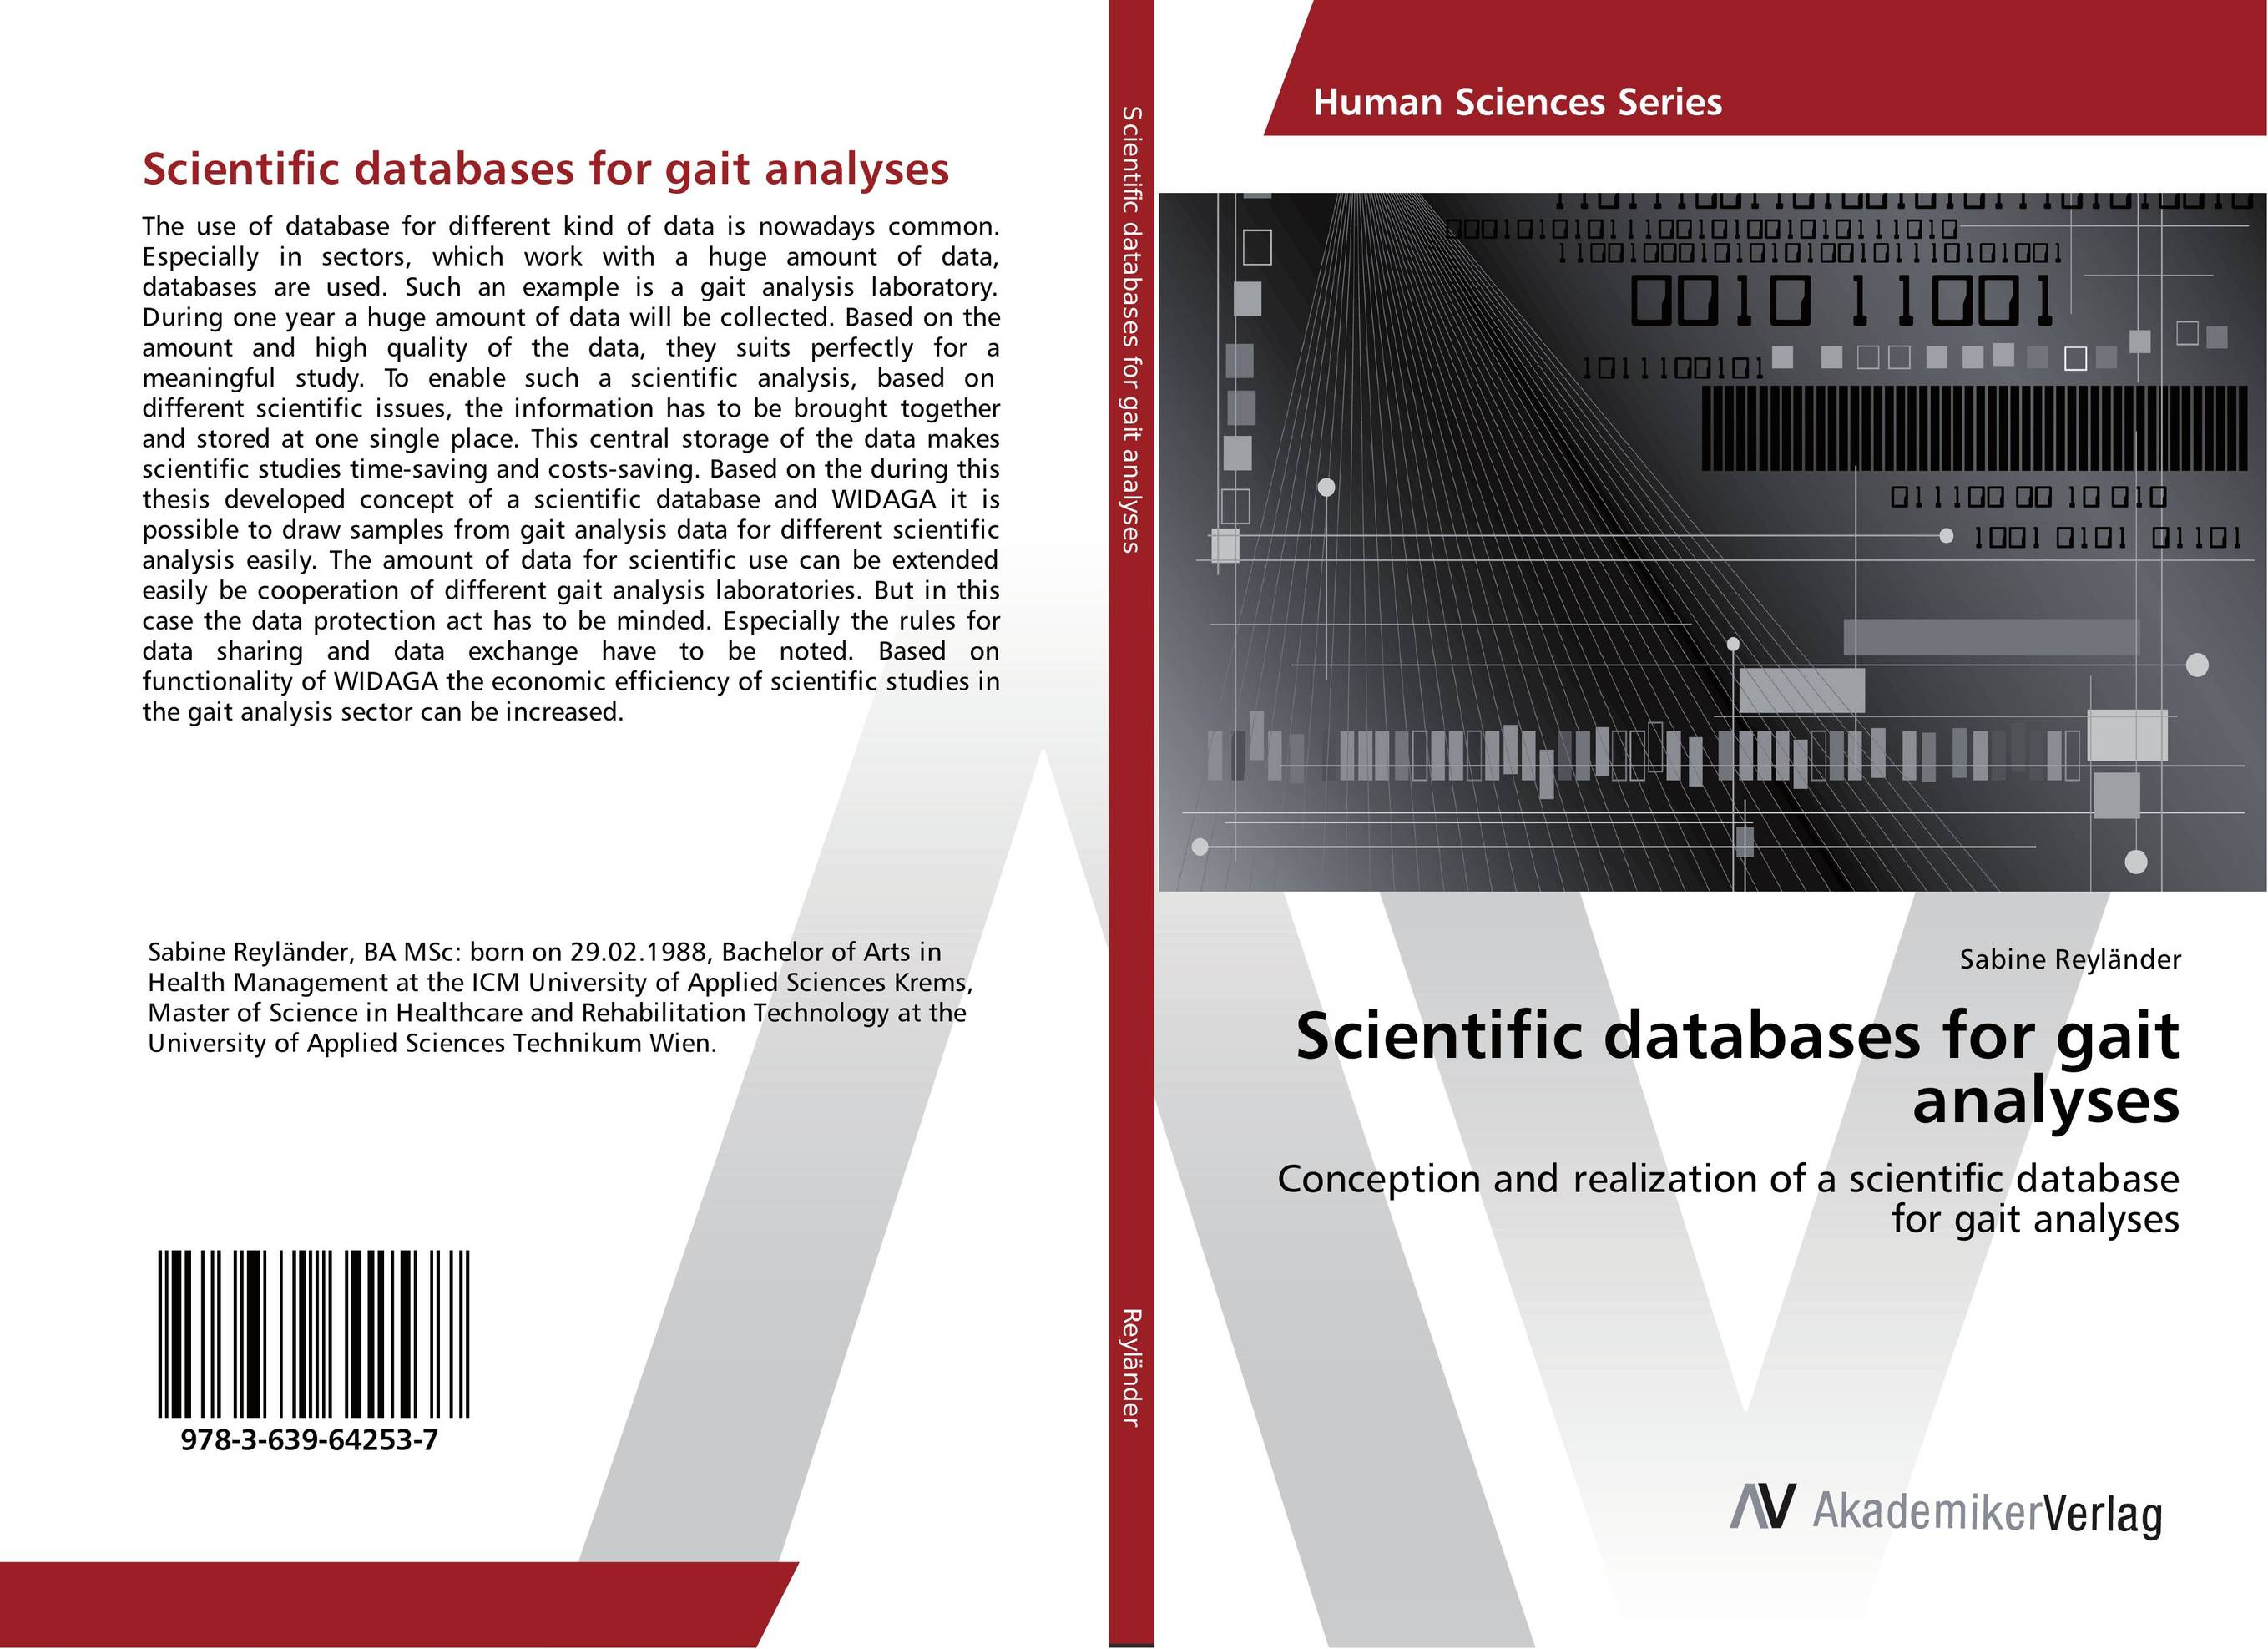 Scientific databases for gait analyses complete dynamic analysis of stewart platform based on workspace